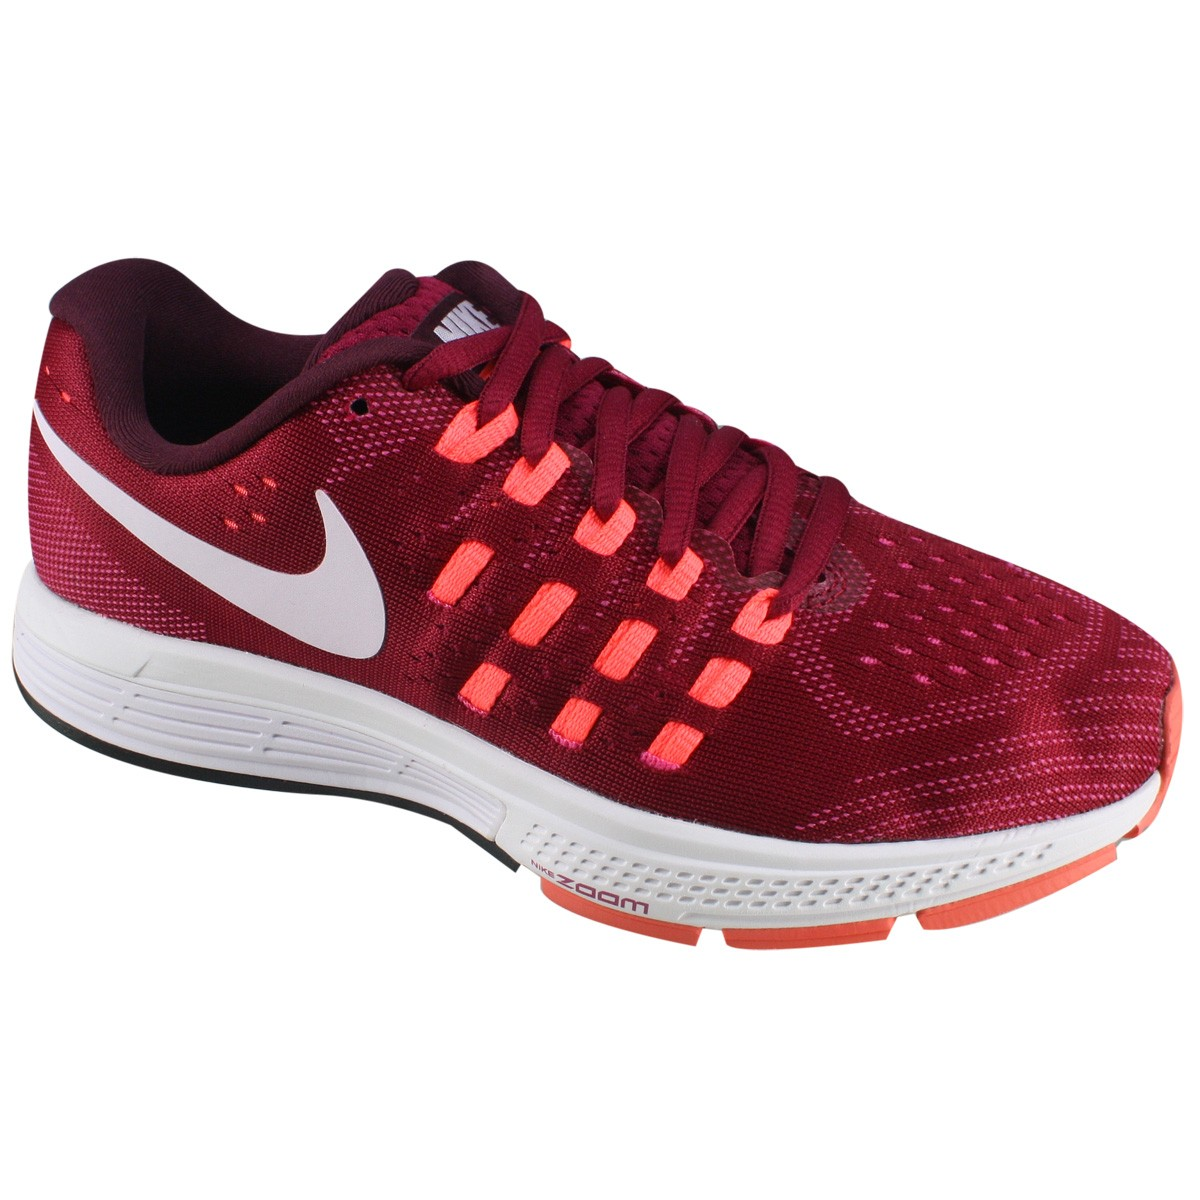 b201009977 Tênis Nike Air Zoom Vomero 11 818100-601 Bordo